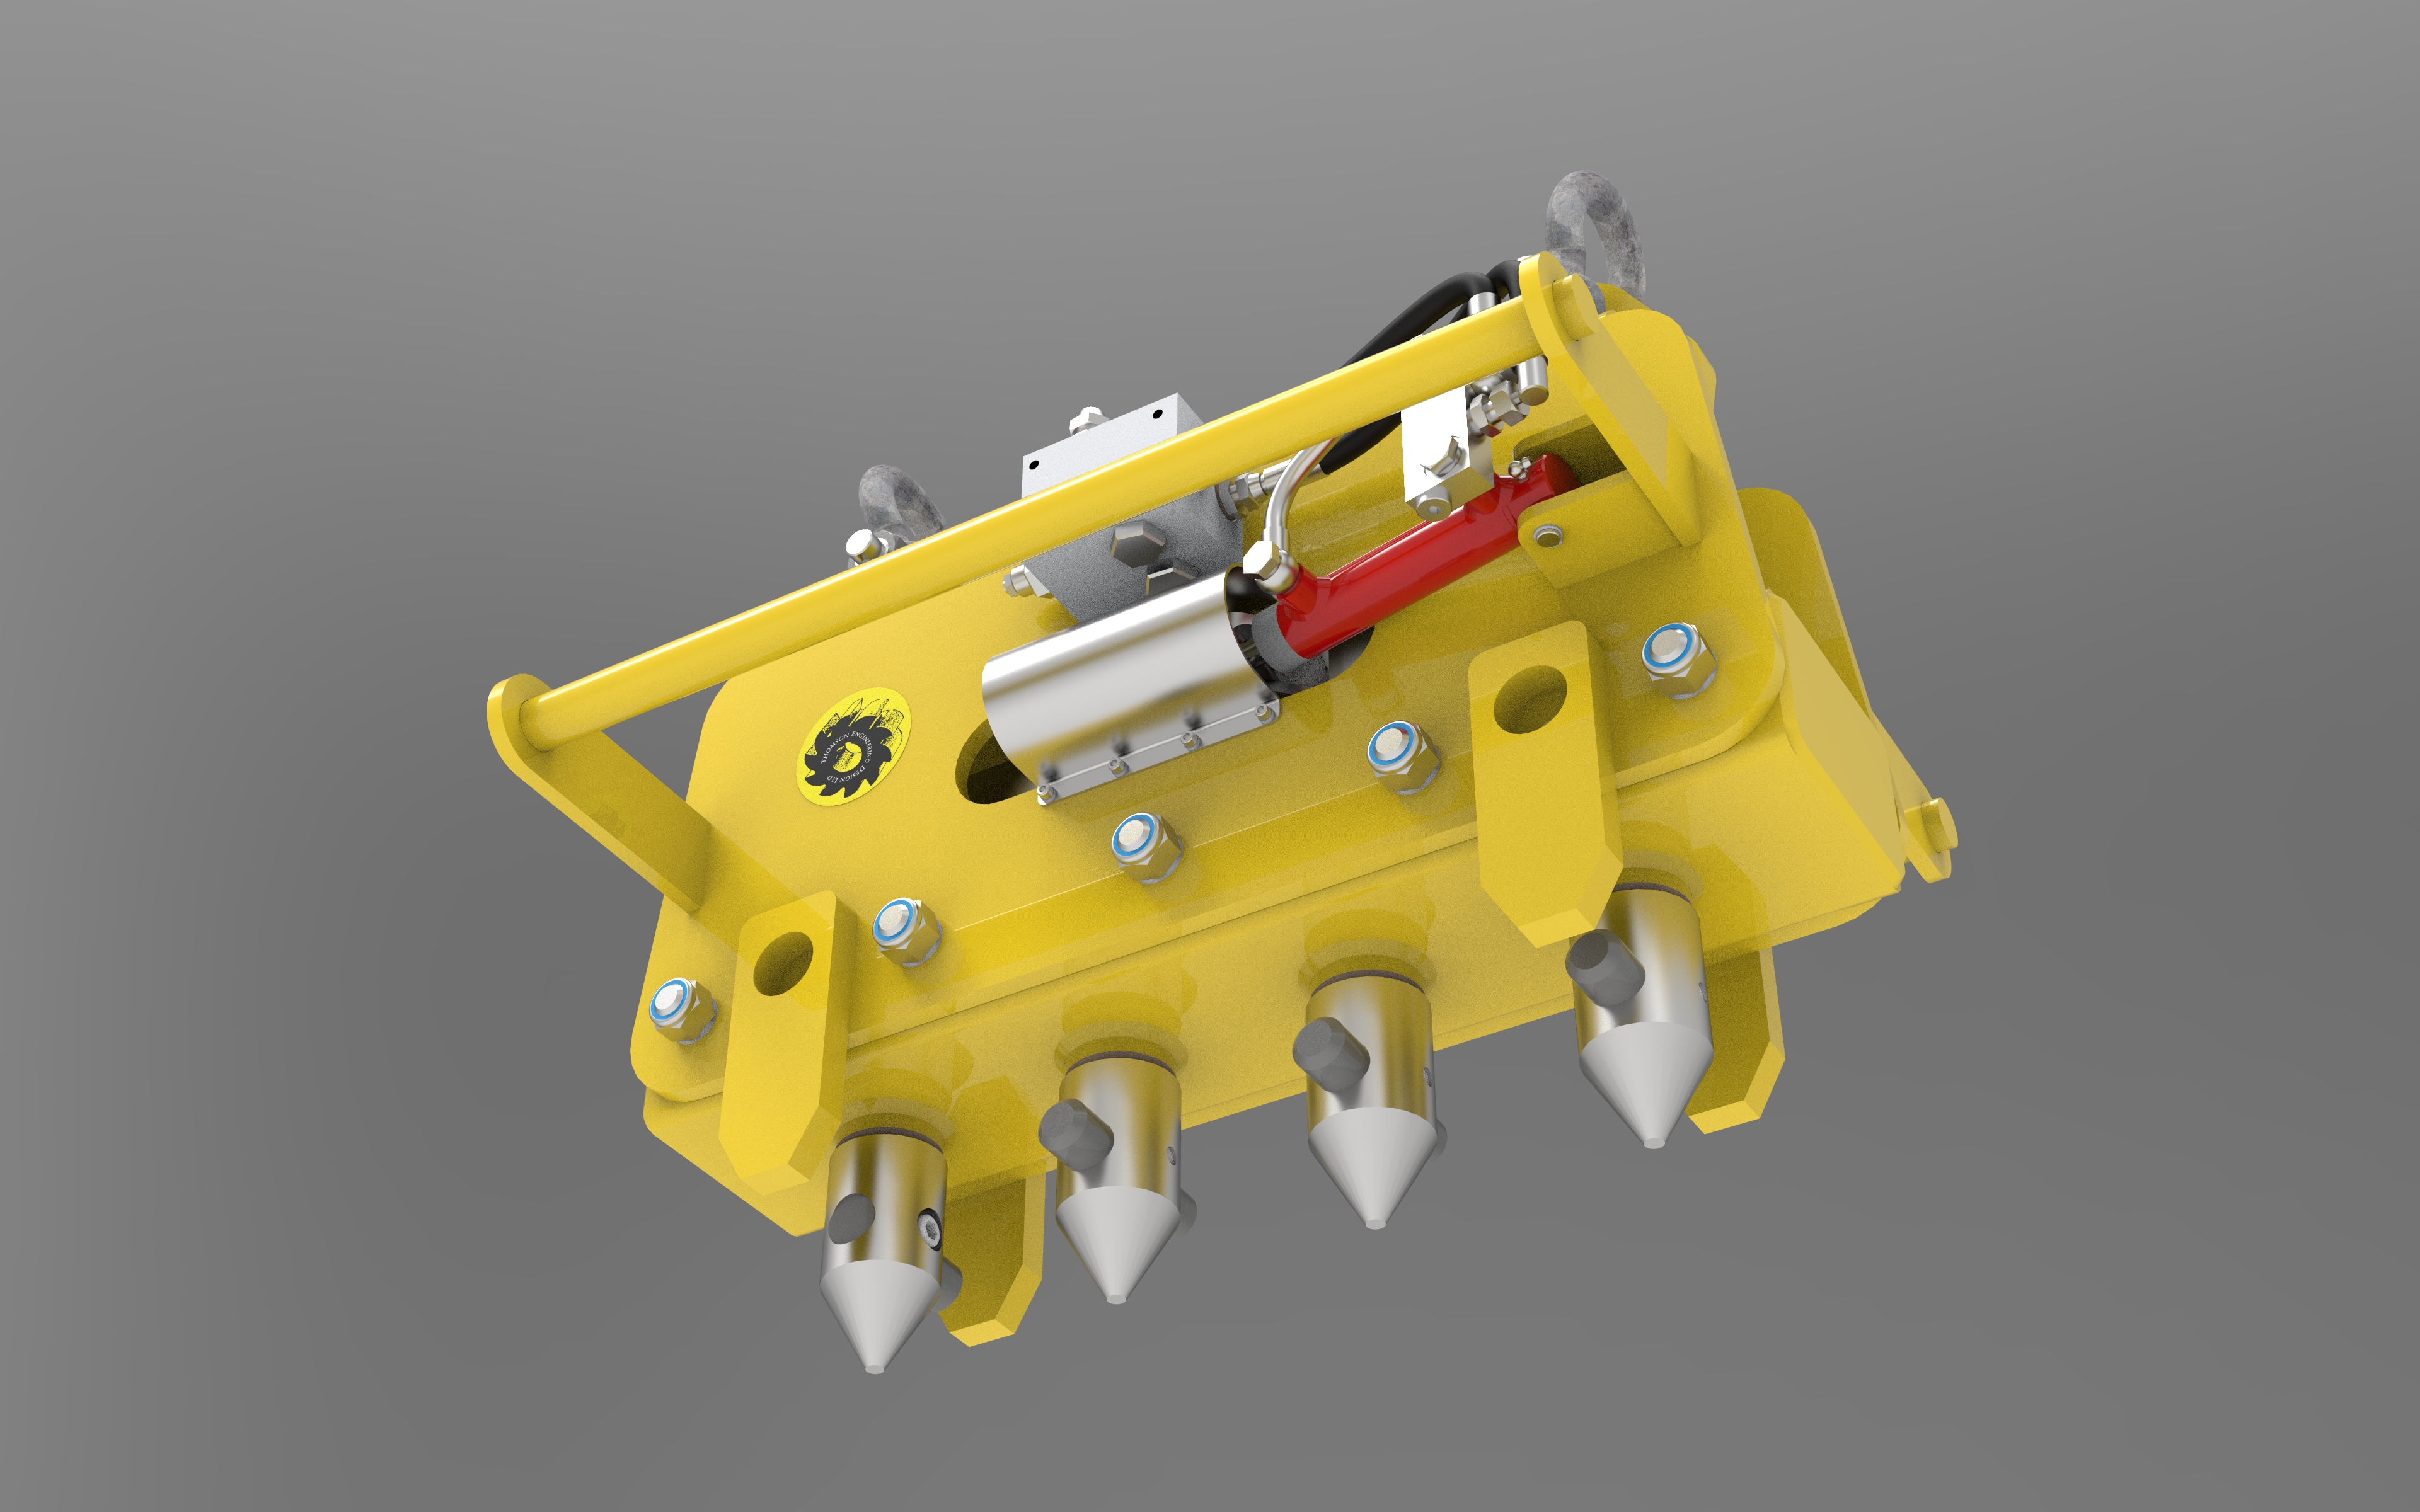 Hydraulic rail lifter for construction